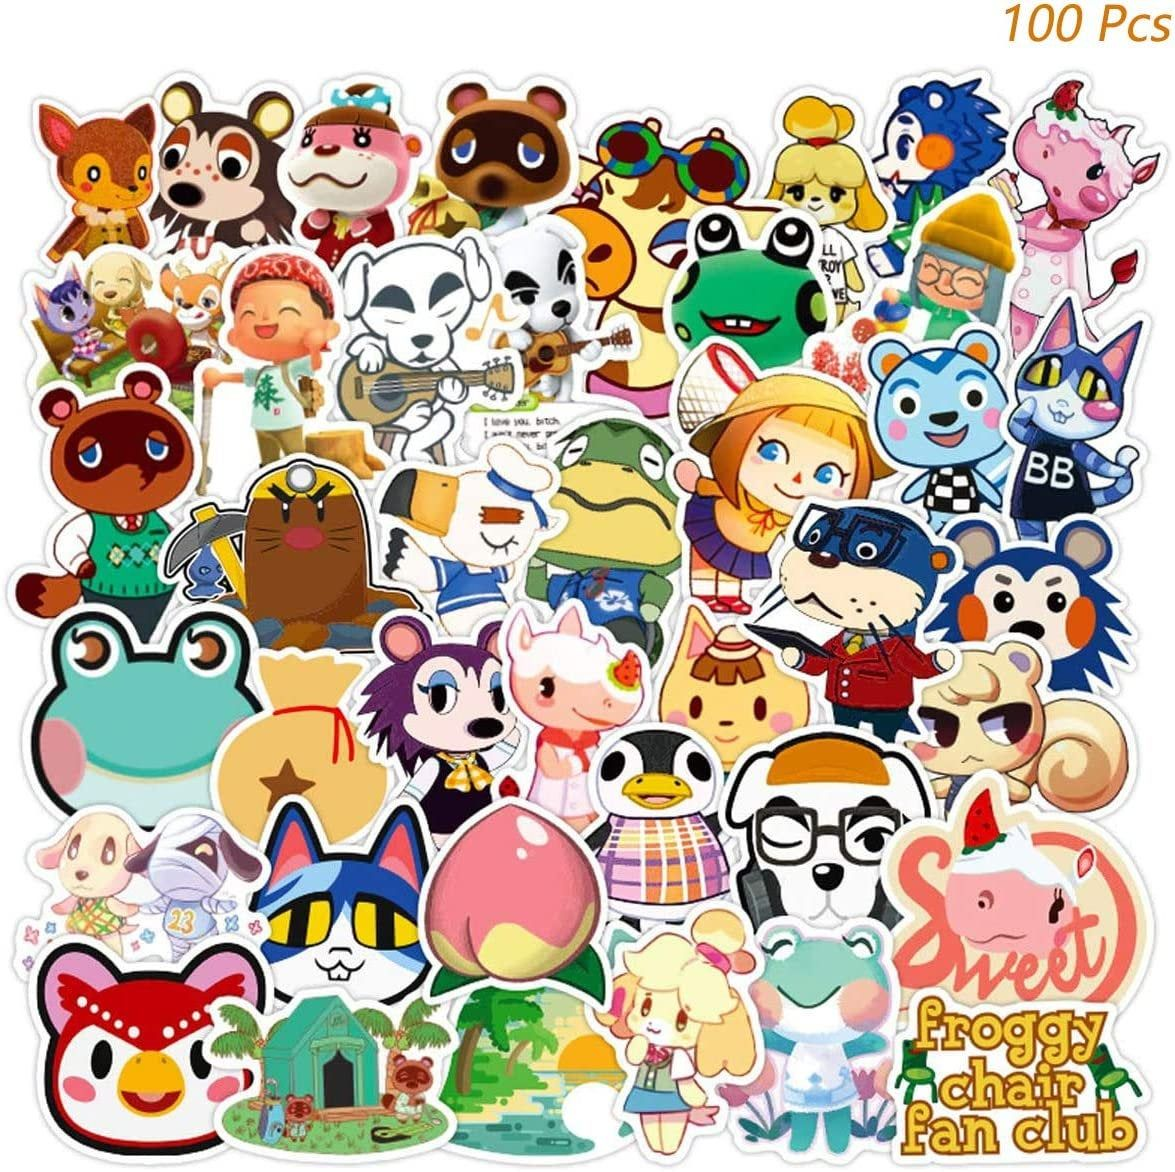 12+ Animal crossing official sticker book images